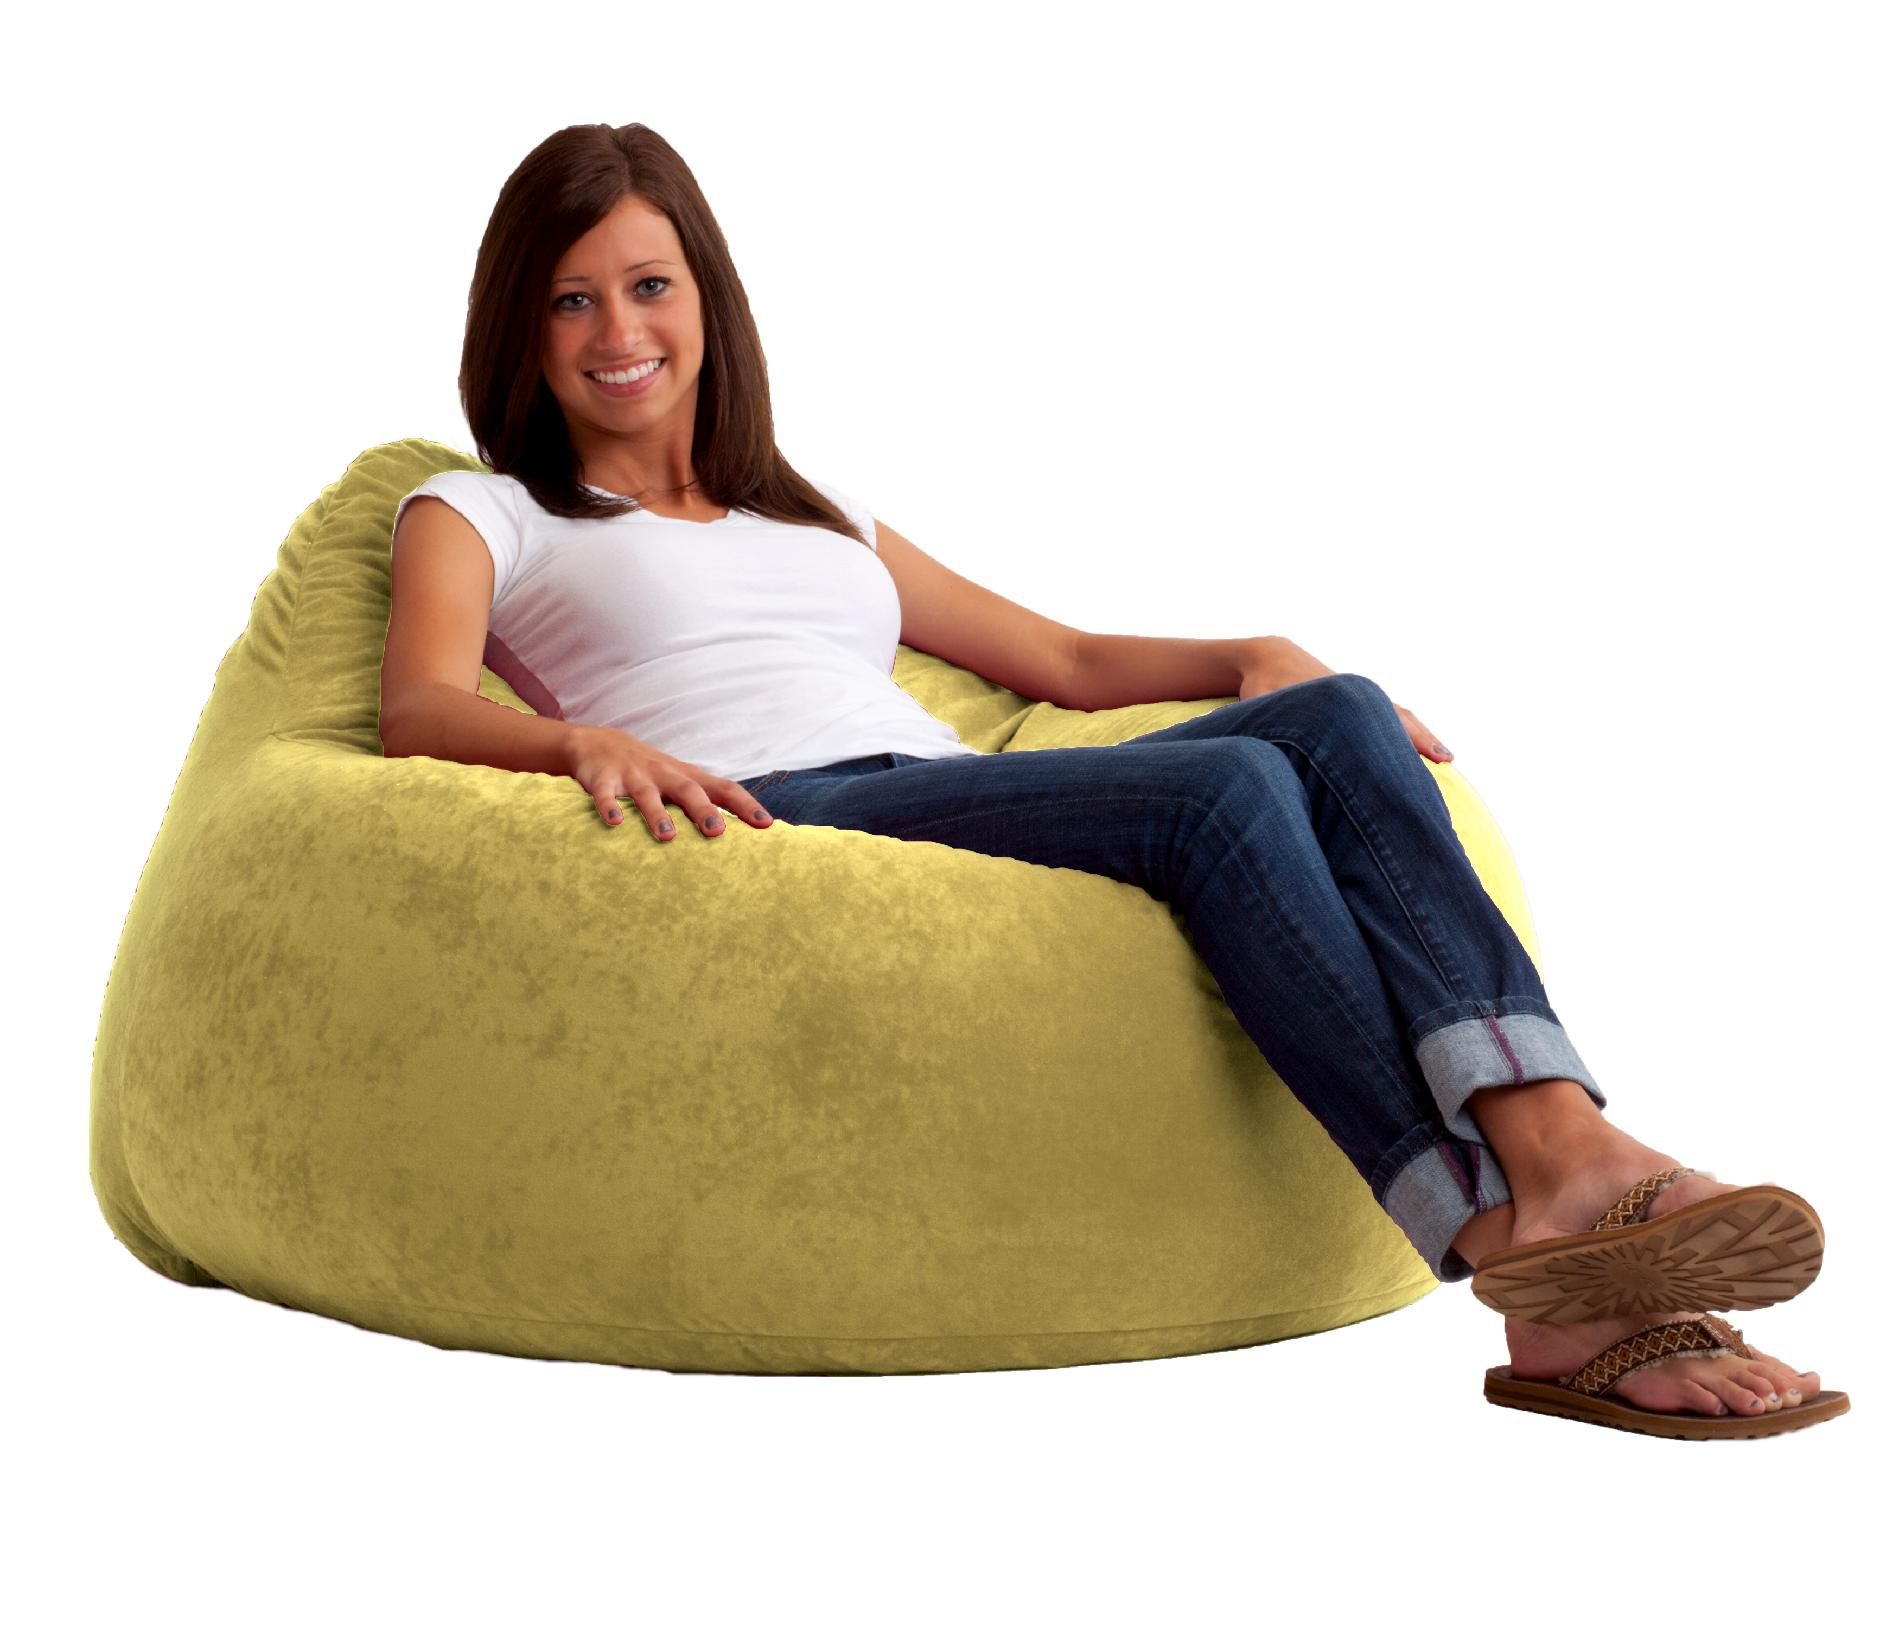 Comfort Research  Fuf Chillum Bean Bag